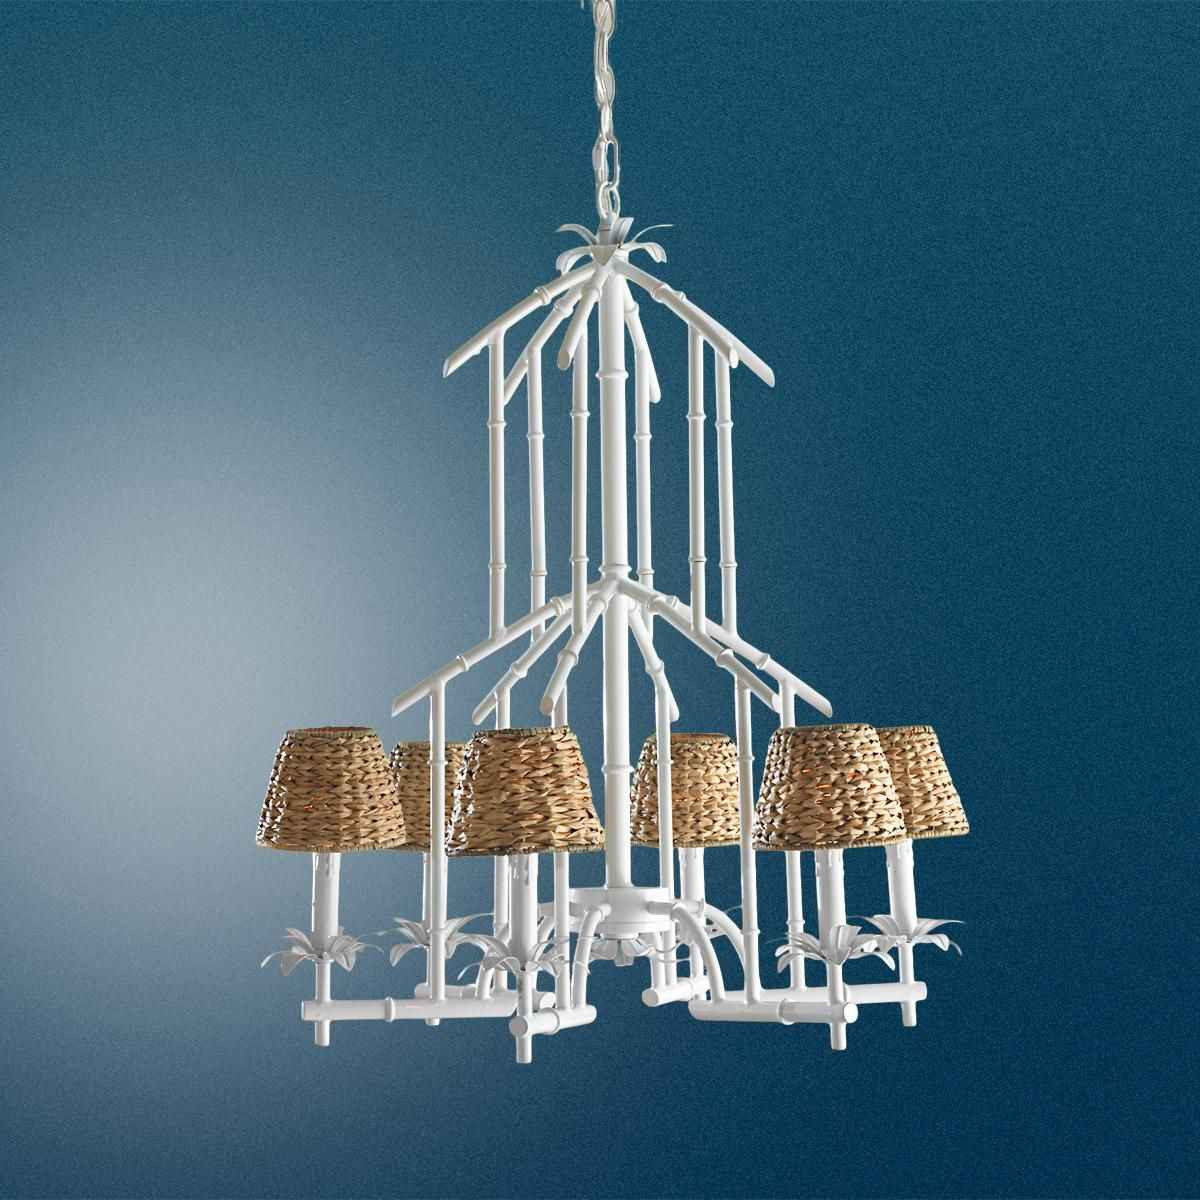 vase chandelier frame of 12 cylinder corona ring chandelier chb0033 0d from chandelier frame with regard to bamboo tower chandelier 6 light great room ideas chandelier frame